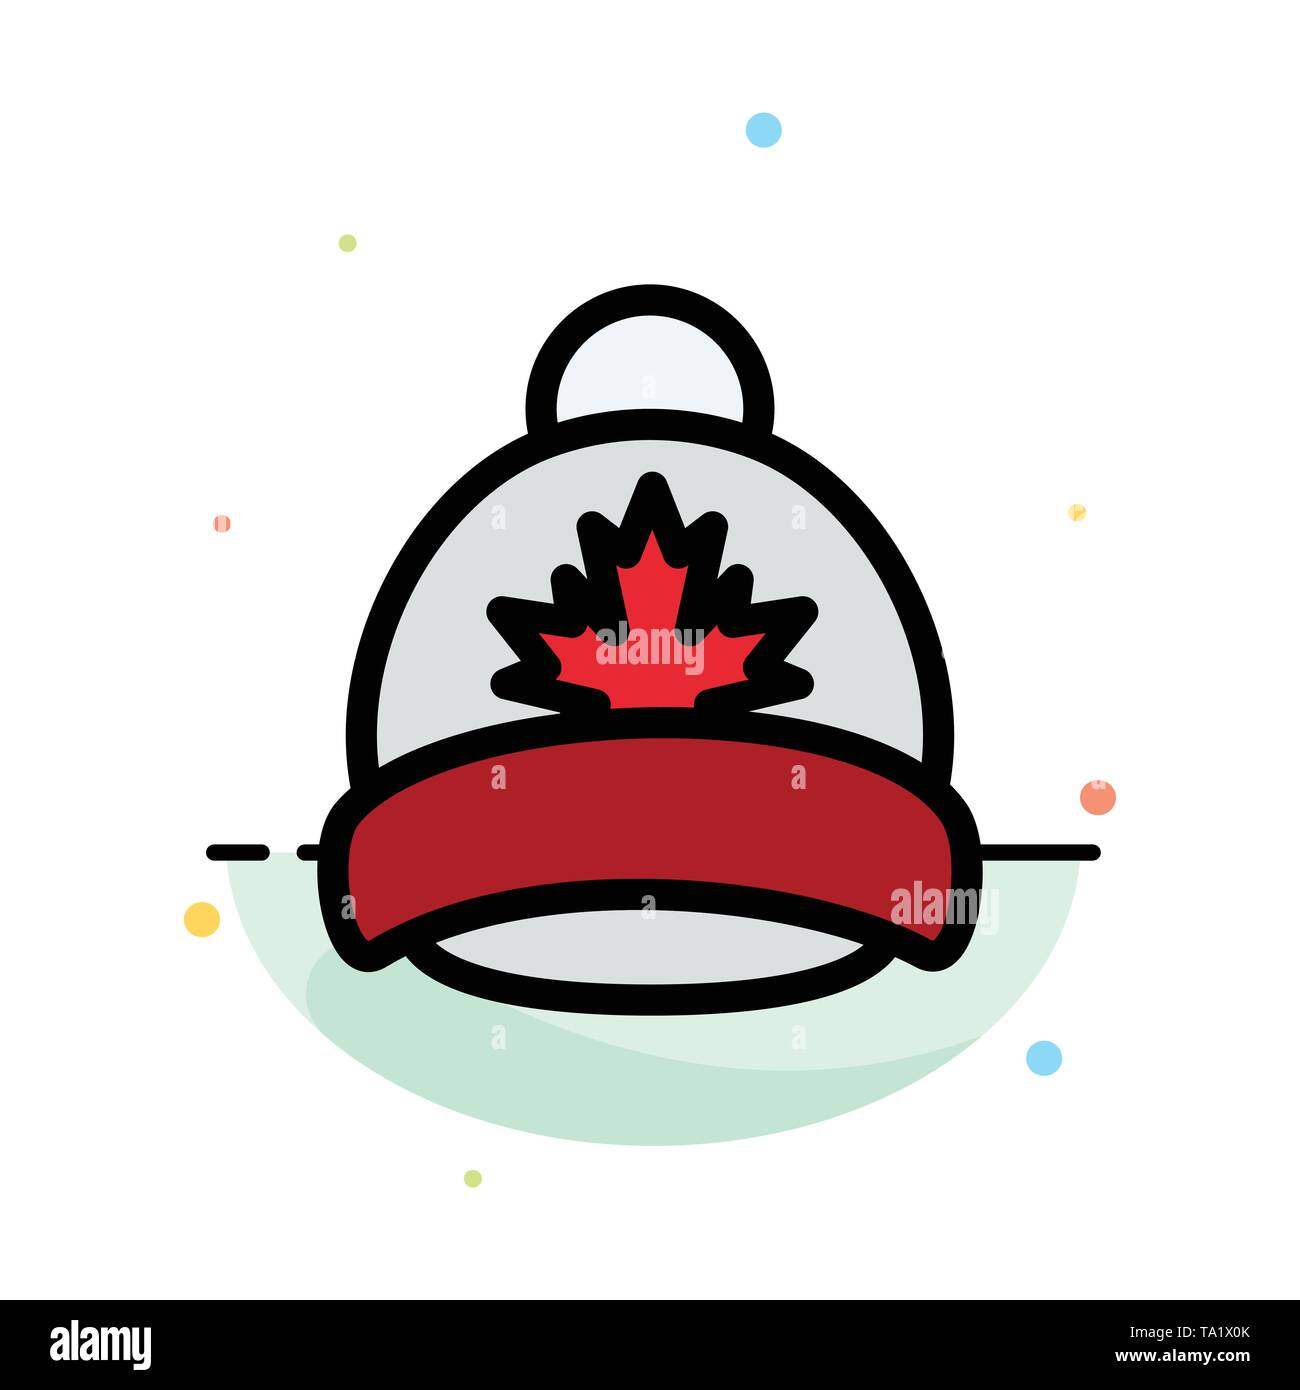 Hat, Cap, Leaf, Canada Abstract Flat Color Icon Template - Stock Image